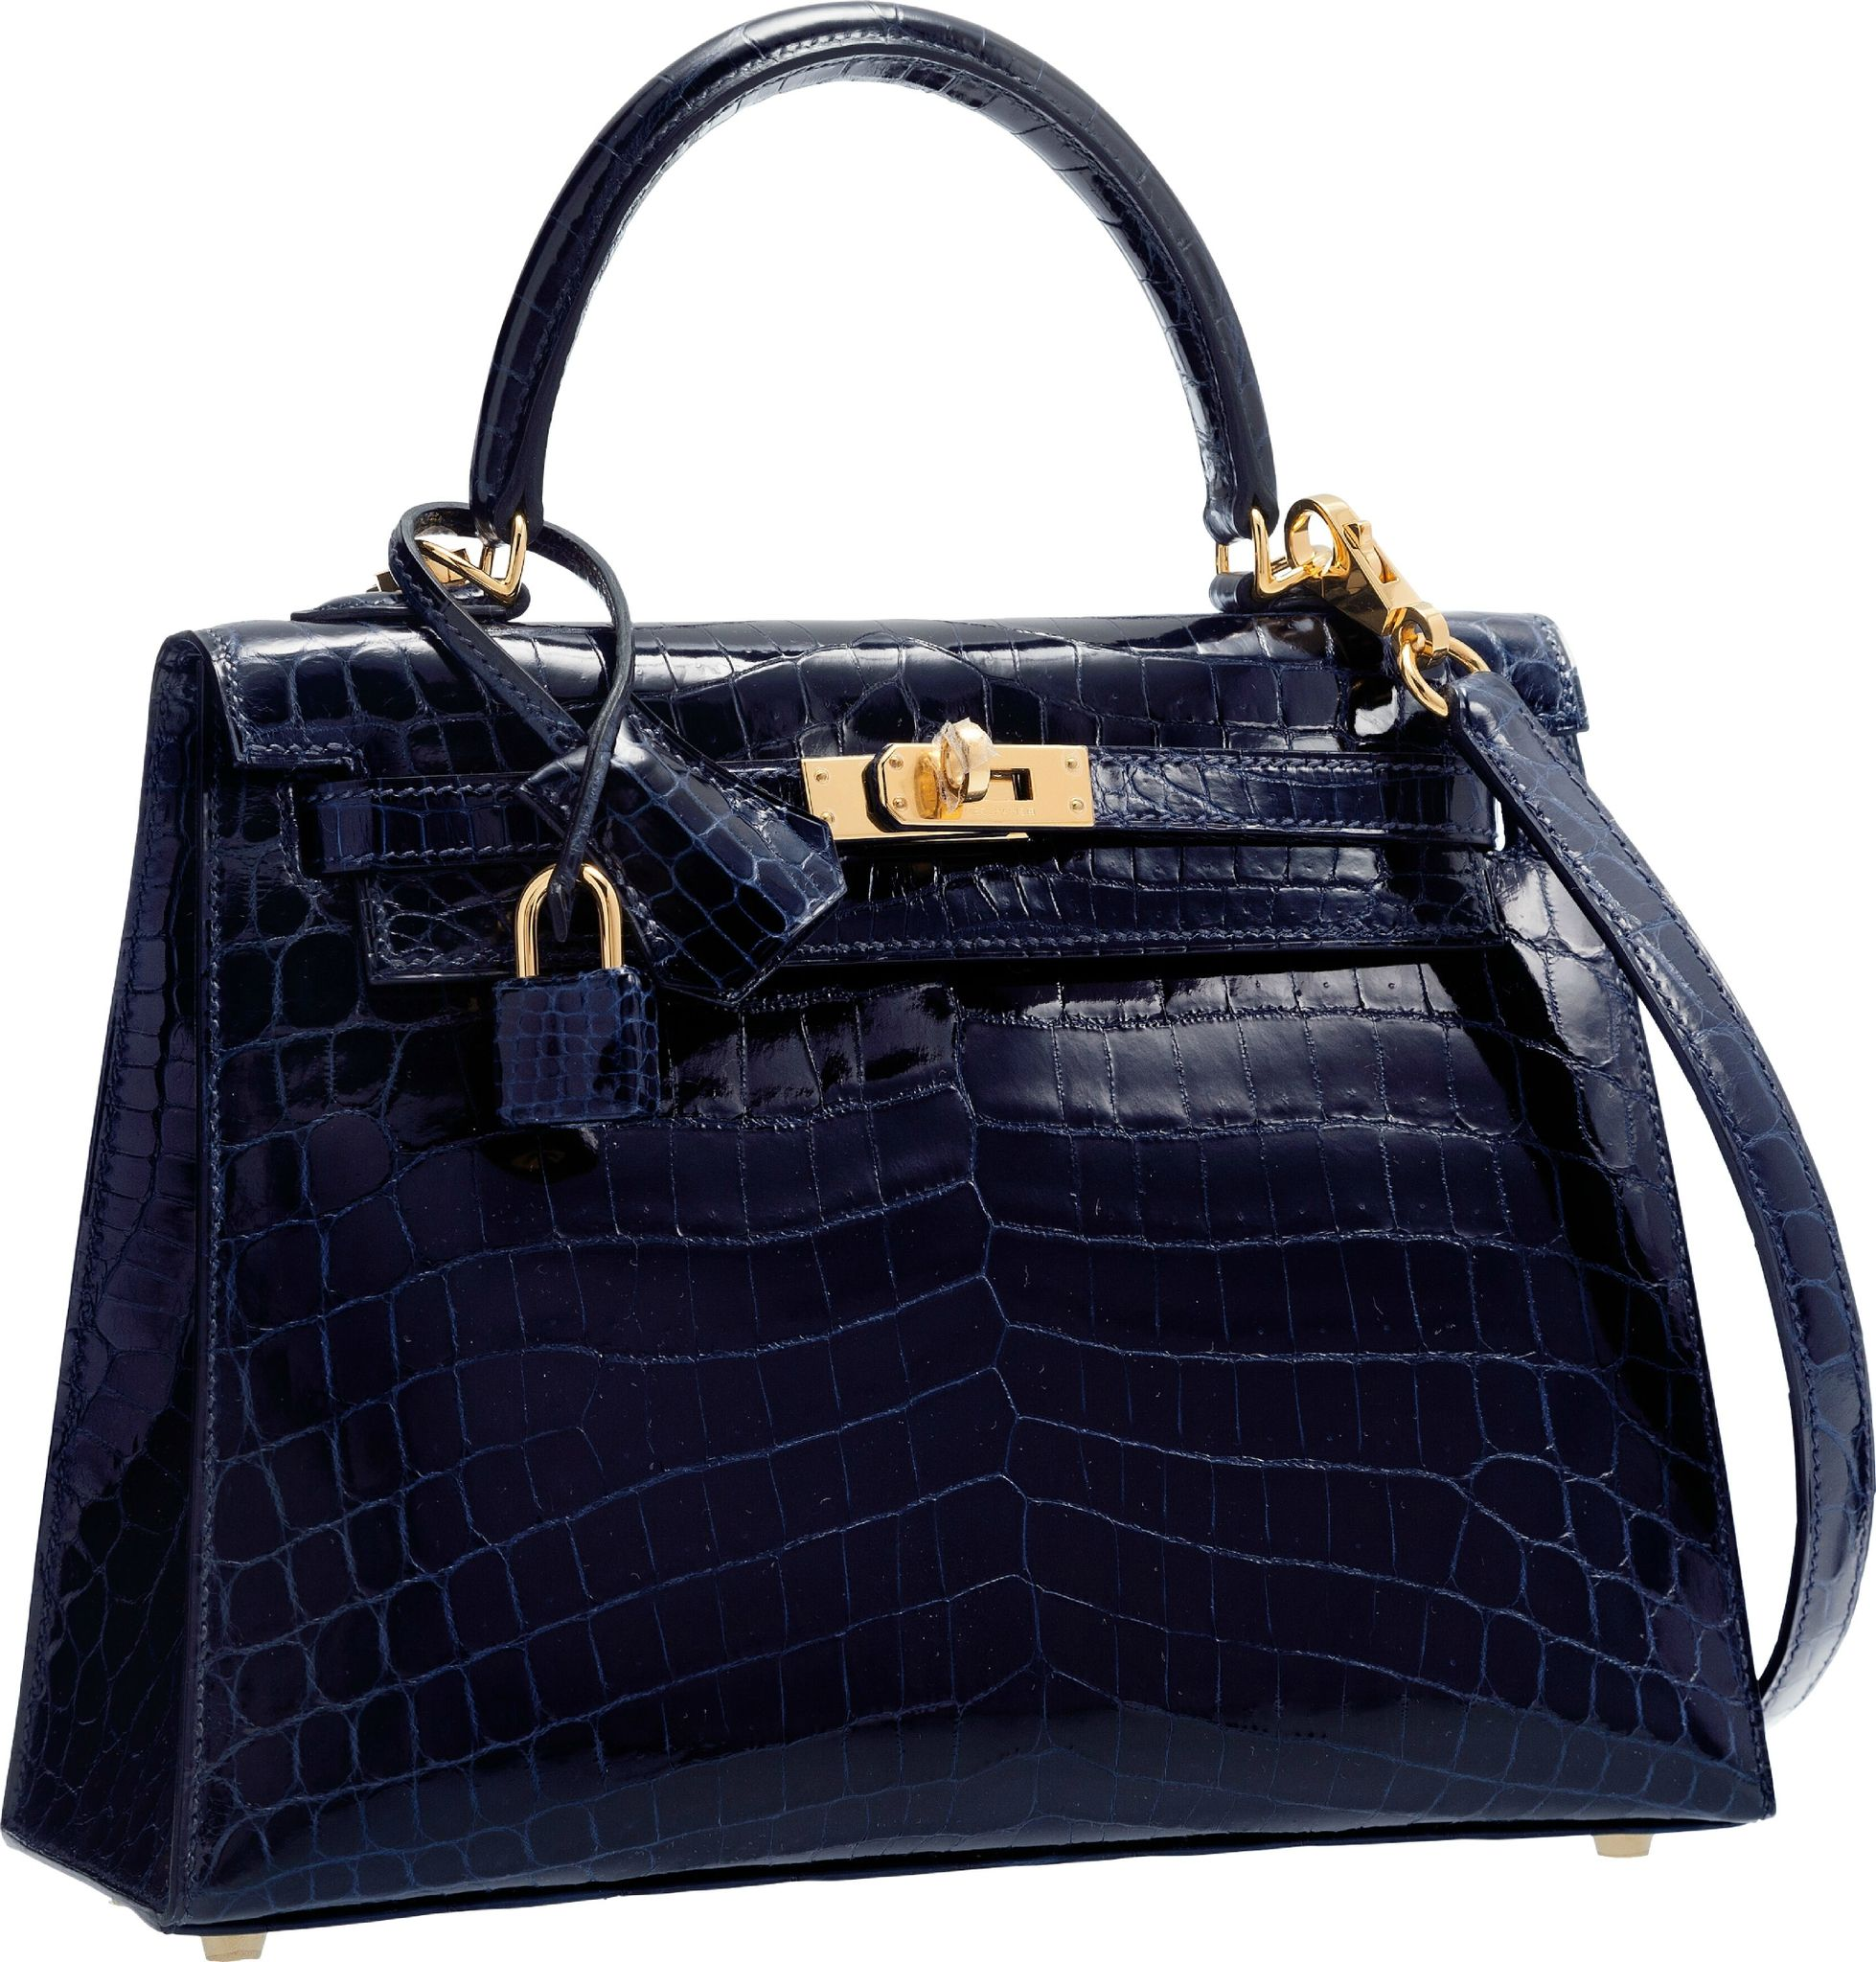 f6a5fe14b8c9 Hermès 25cm Shiny Blue Marine Nilo Crocodile Sellier Kelly Bag with Gold  Hardware.